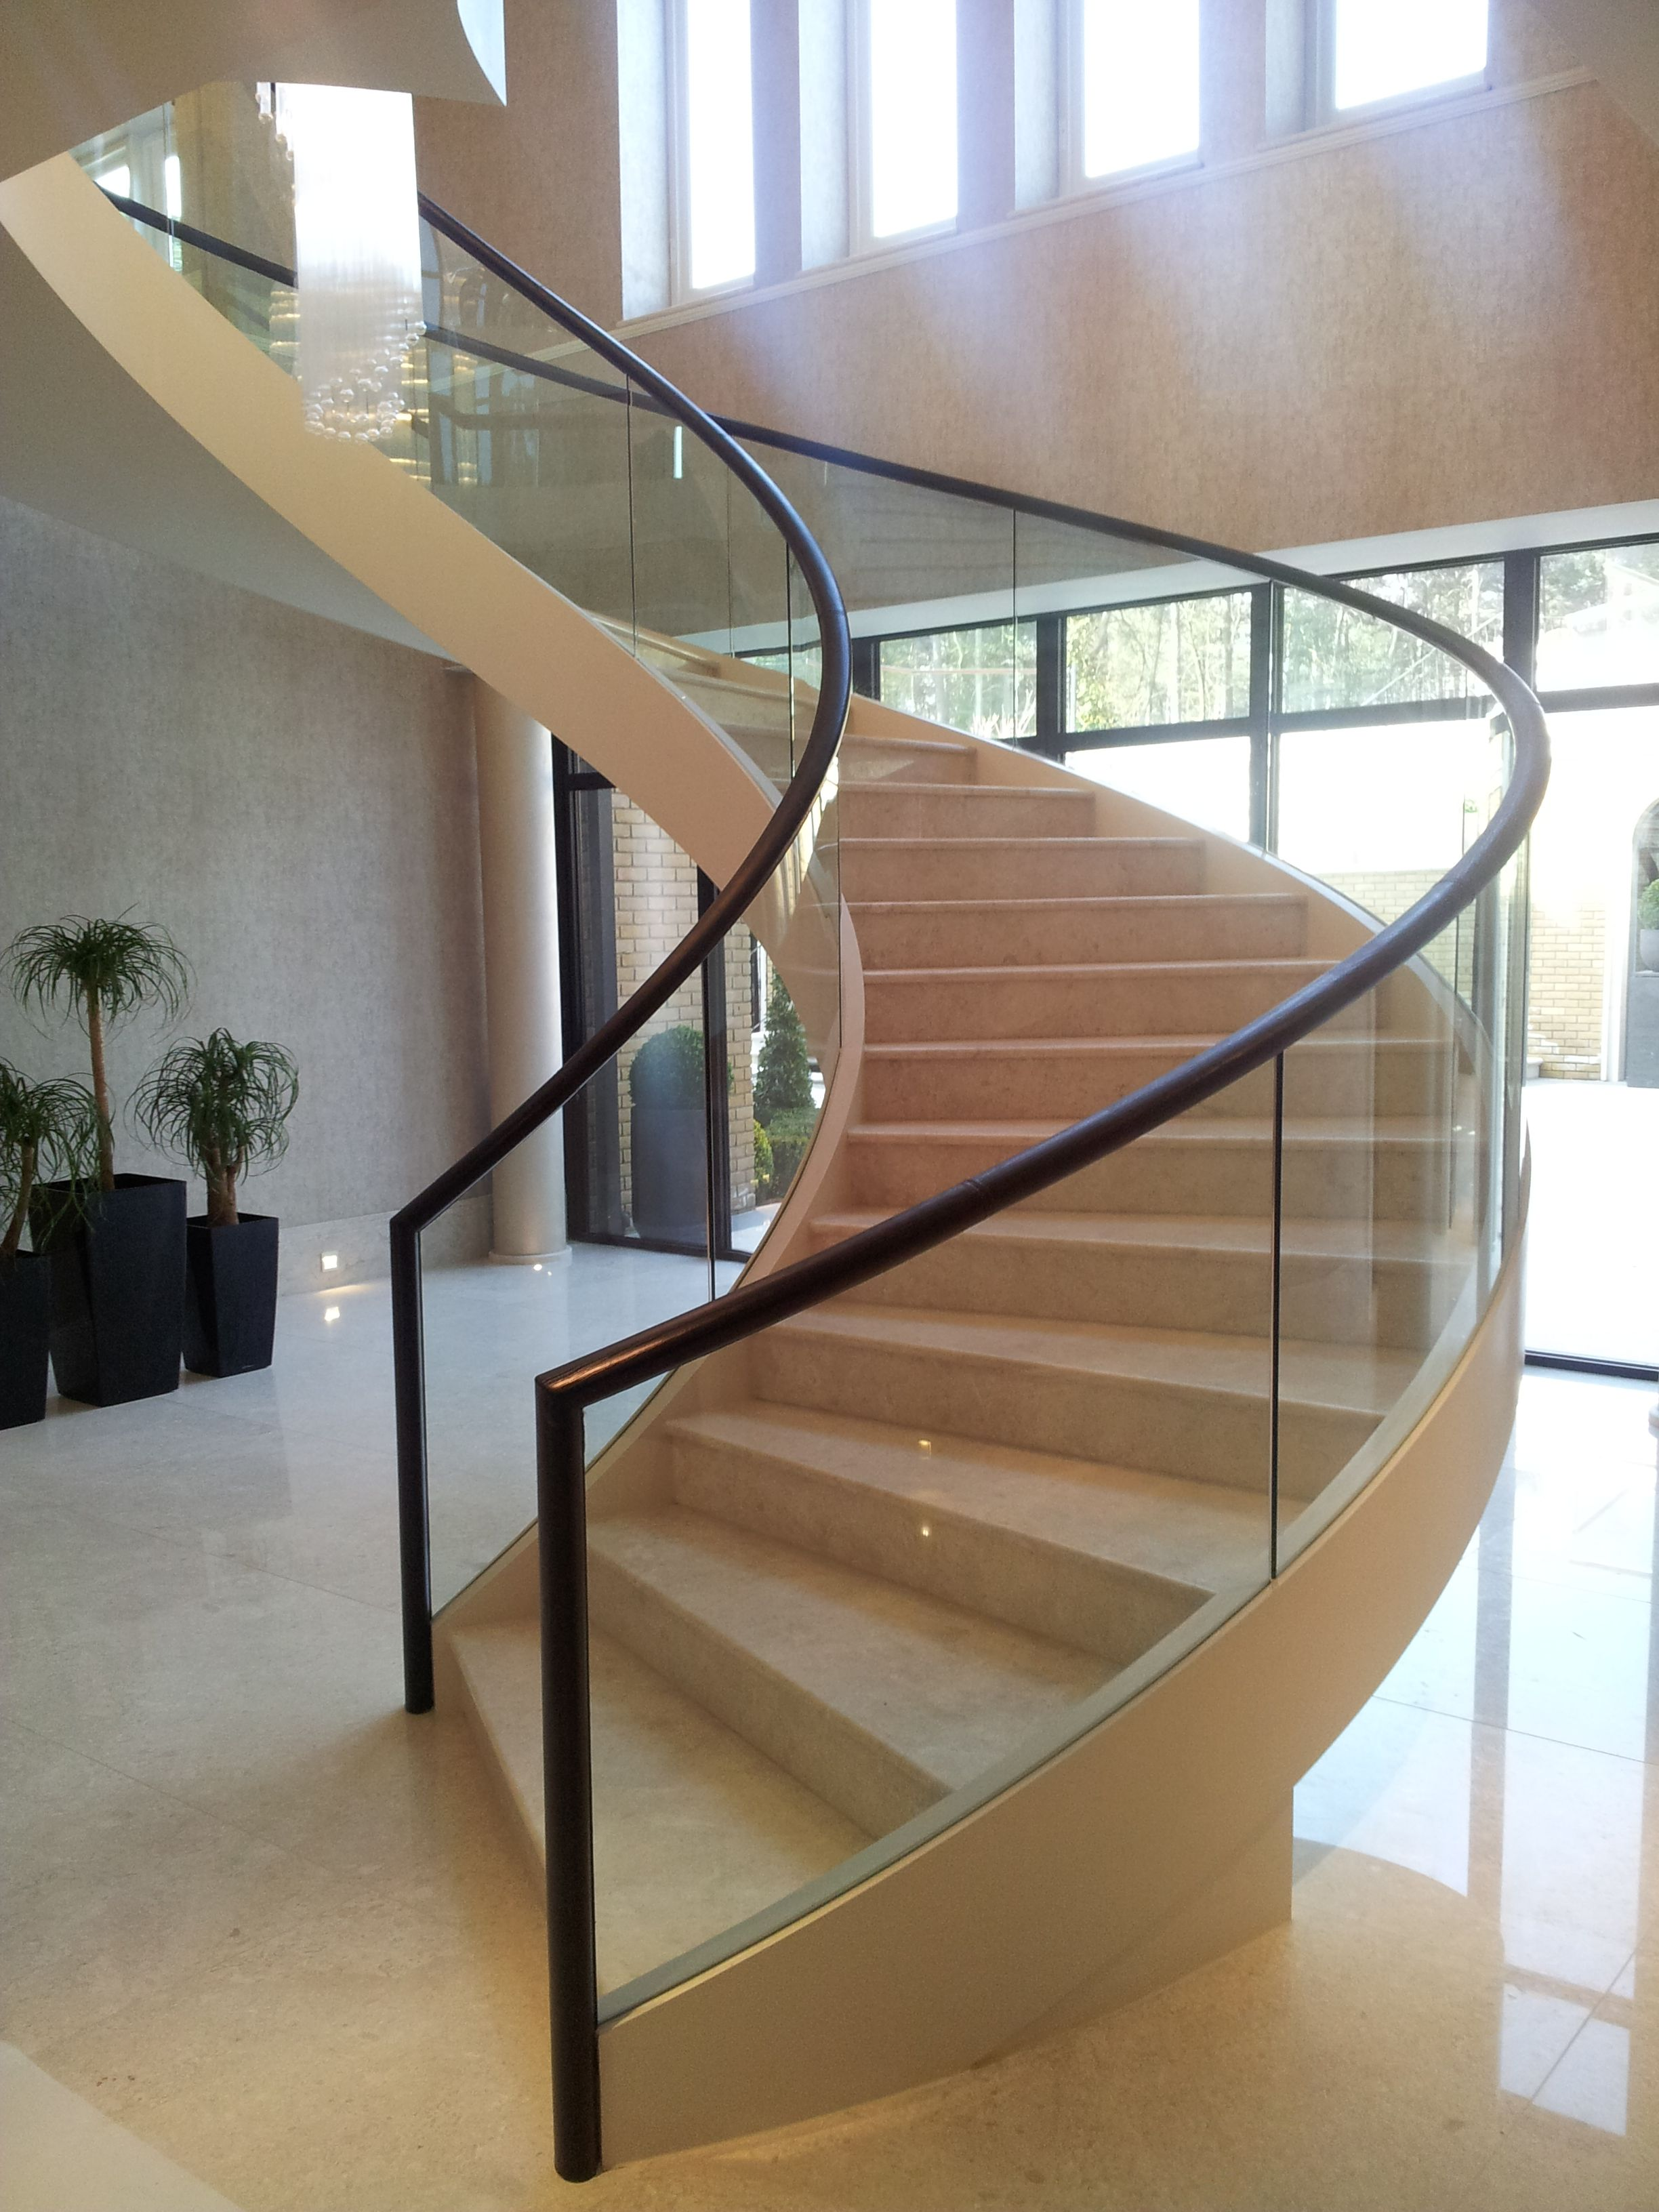 Fabricated Mild Steel Helical Staircase With Structural